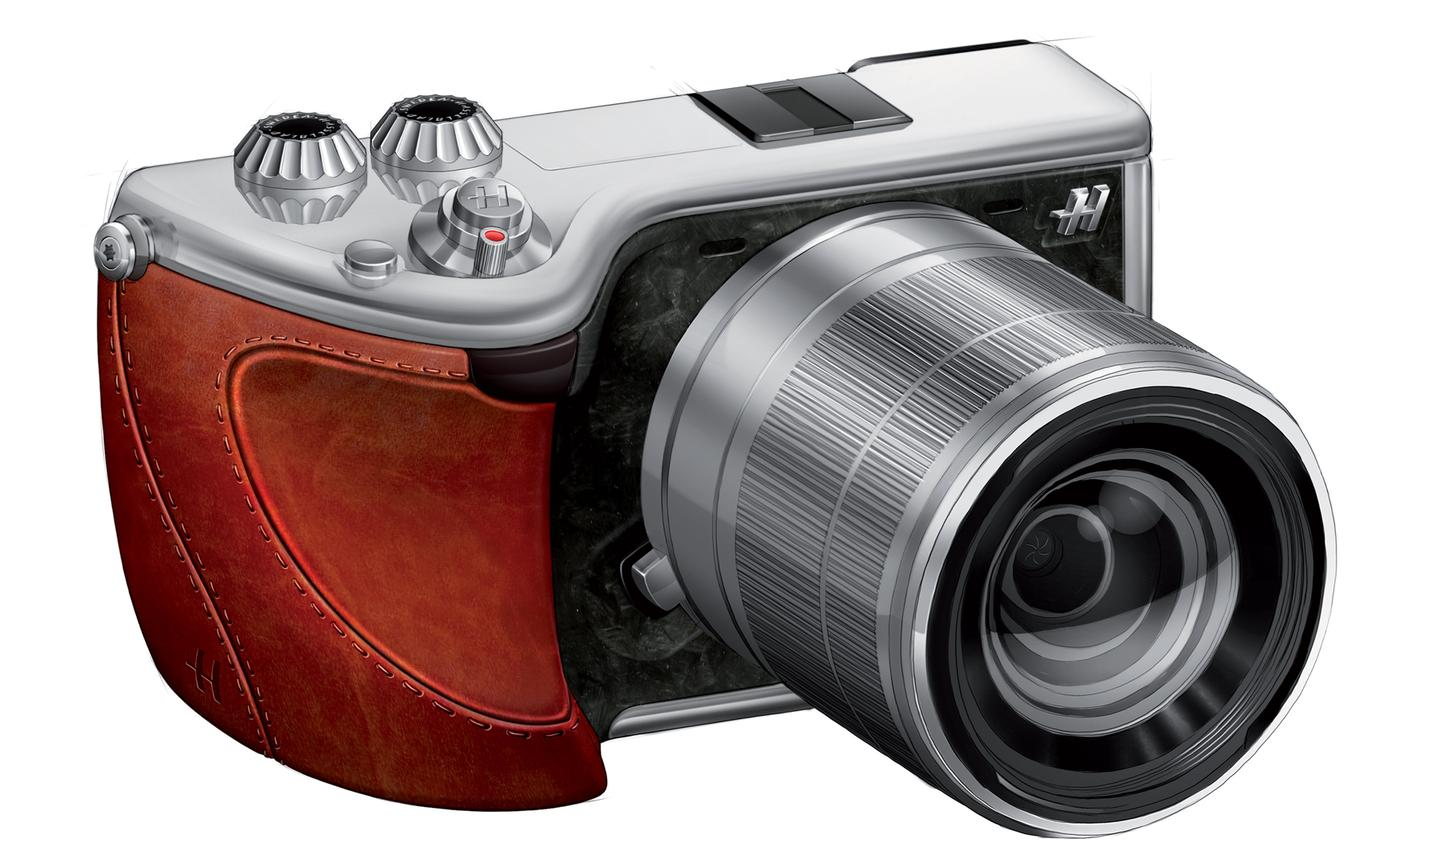 Hasselblad Lunar with tanned leather grip